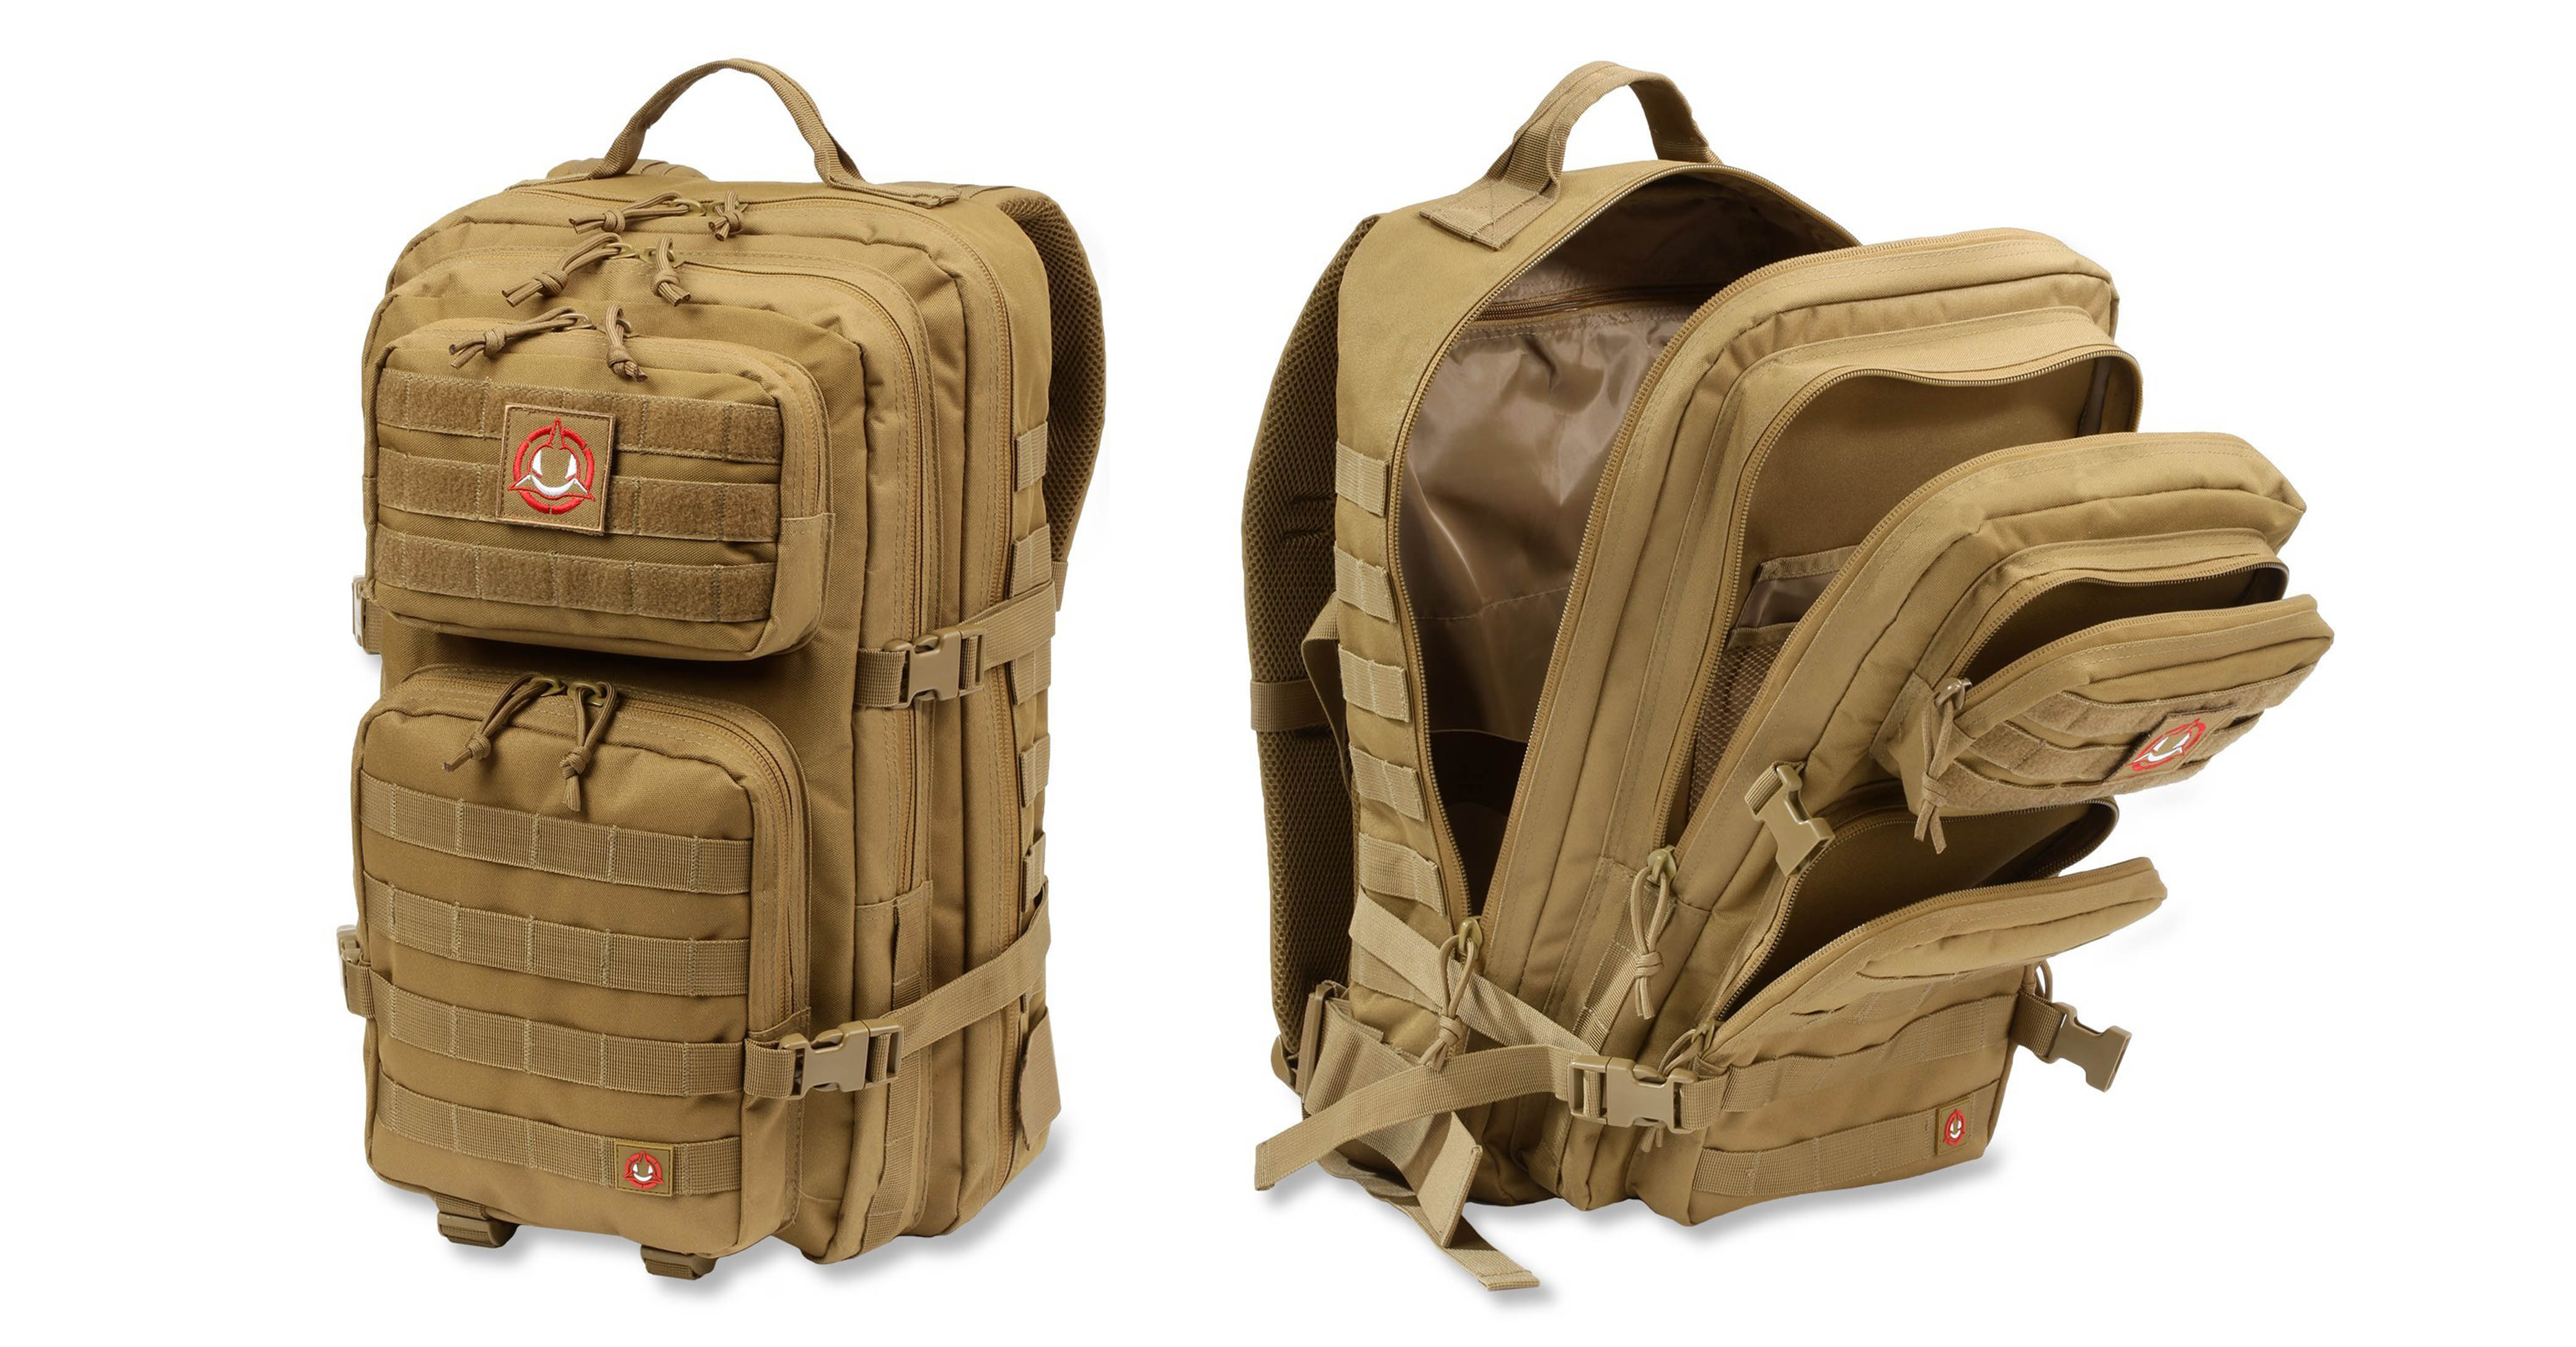 Orca Tactical SALISH 40L MOLLE Large 3-Day Army Military Survival Backpack Bug Out Bag